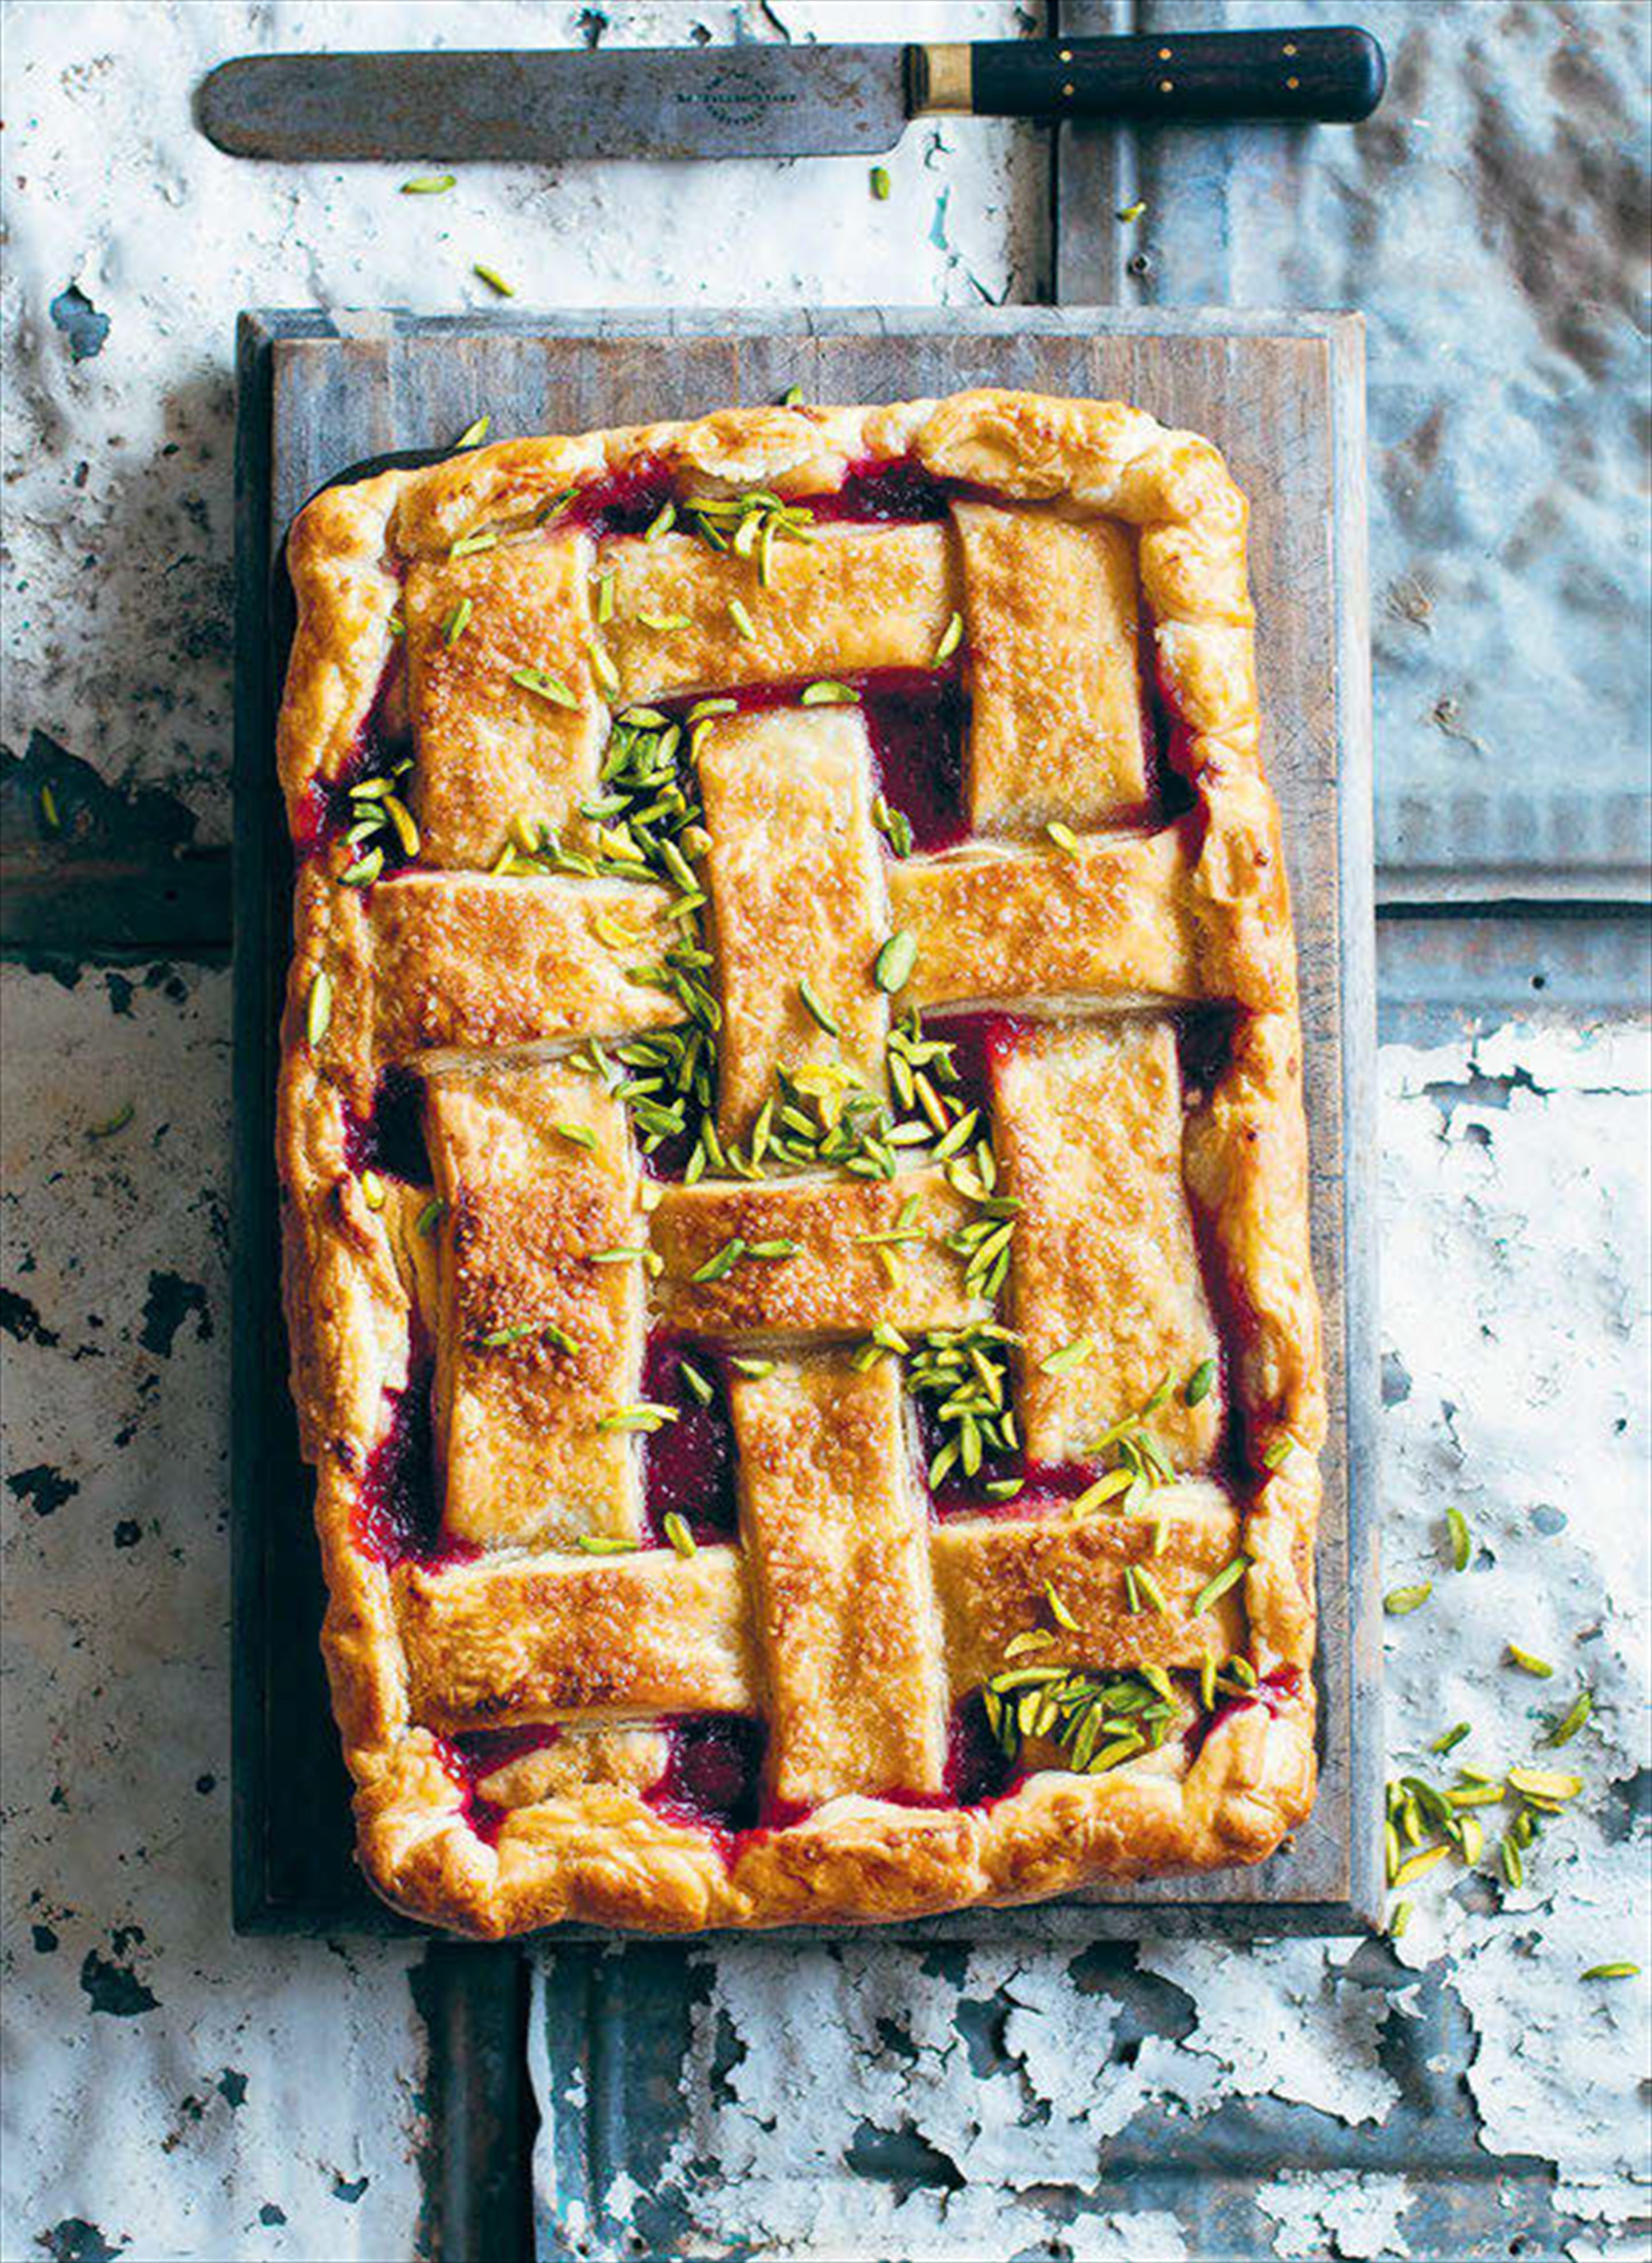 Rhubarb, orange and pistachio pie